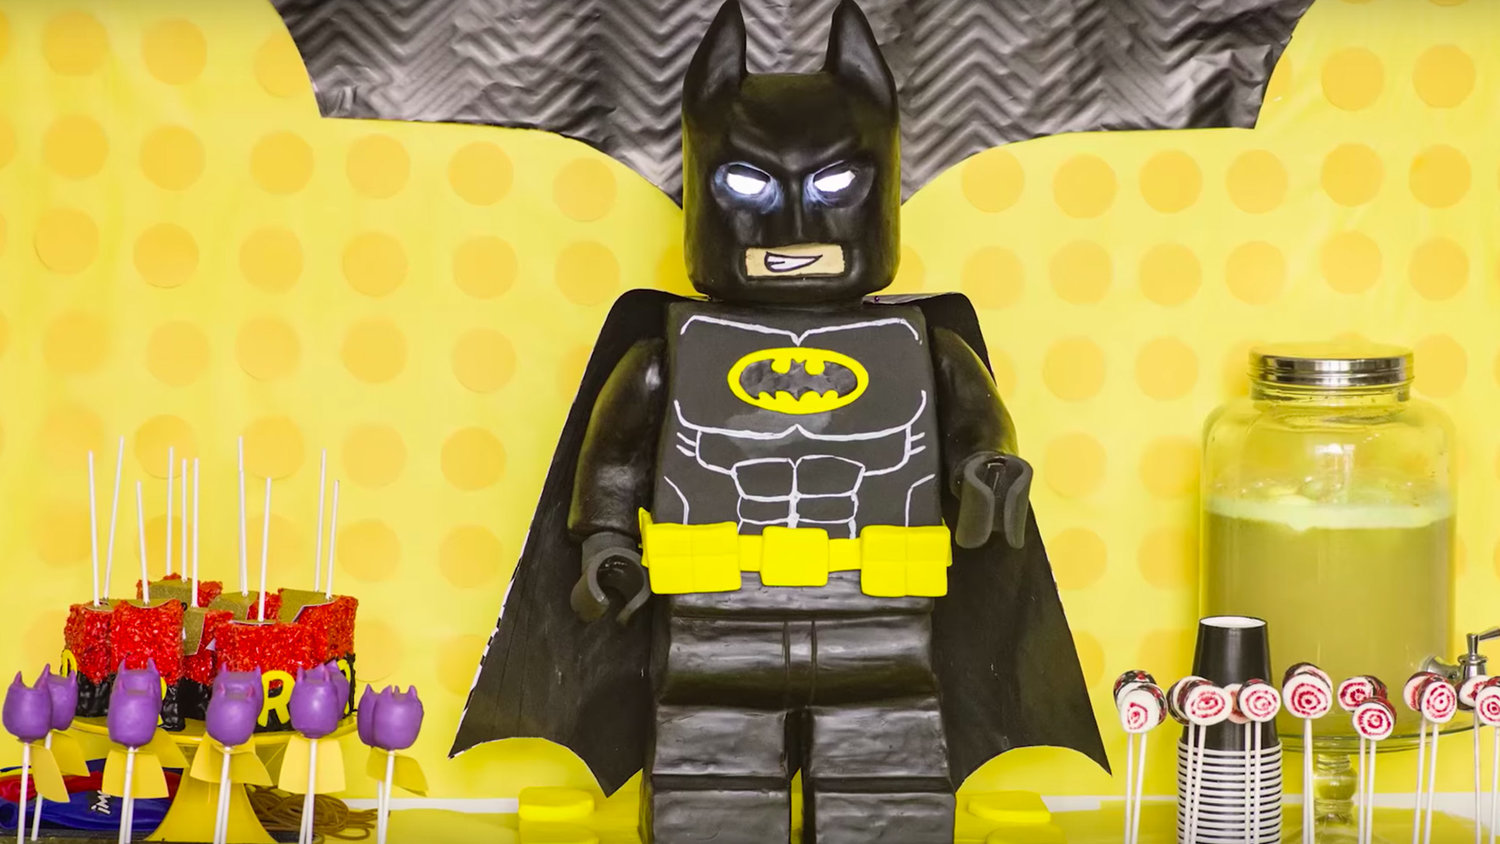 This Huge LEGO BATMAN Cake Makes the Dark Knight Look Delicious